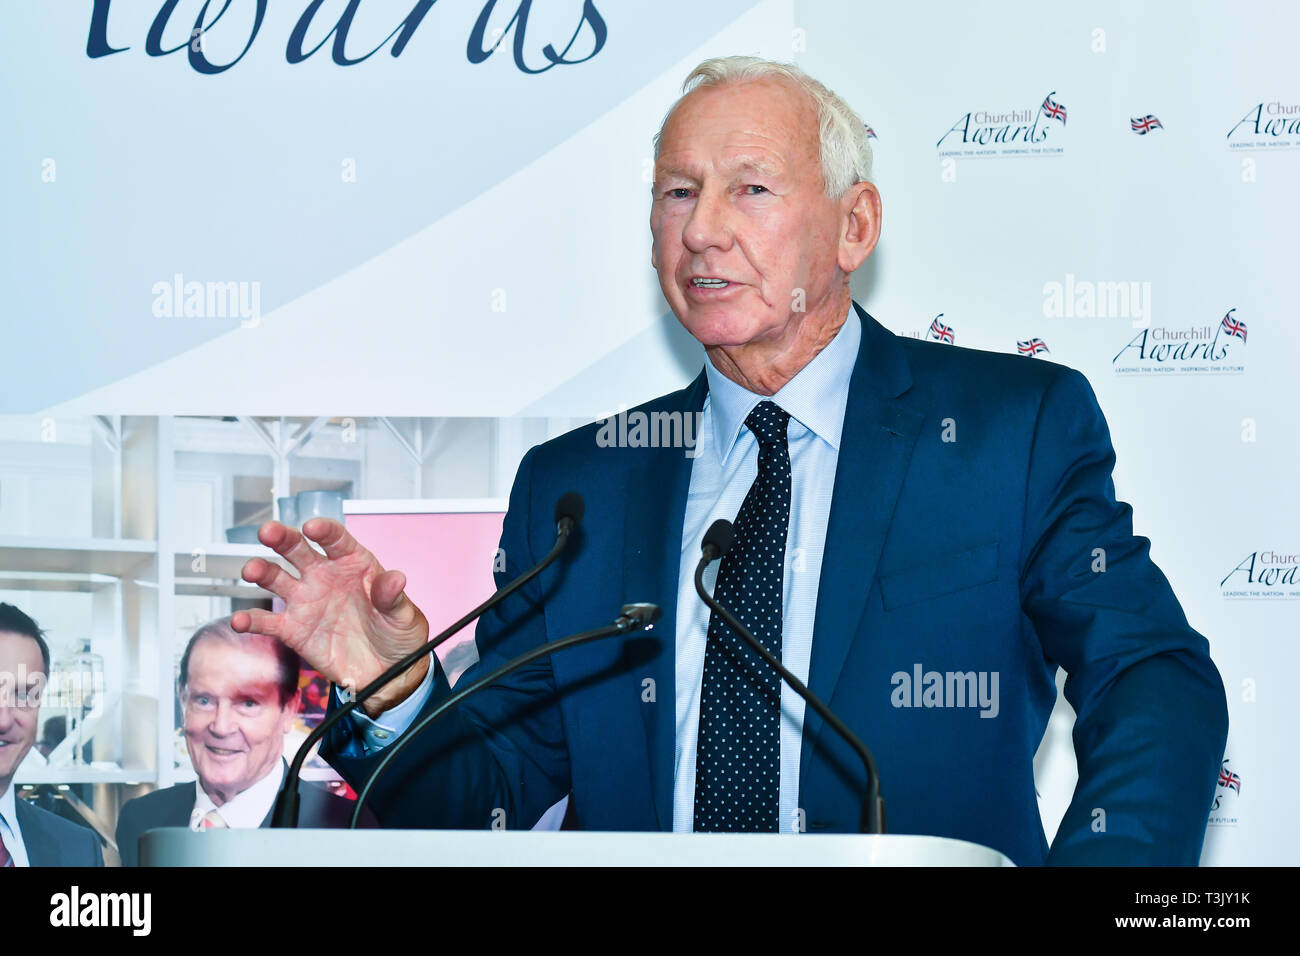 London, UK. 10th Apr, 2019. Winner of  Sport – Bob Wilson OBE the 7th annual Churchill Awards honour achievements of the Over 65's at Claridge's Hotel on 10 March 2019, London, UK. Credit: Picture Capital/Alamy Live News Stock Photo